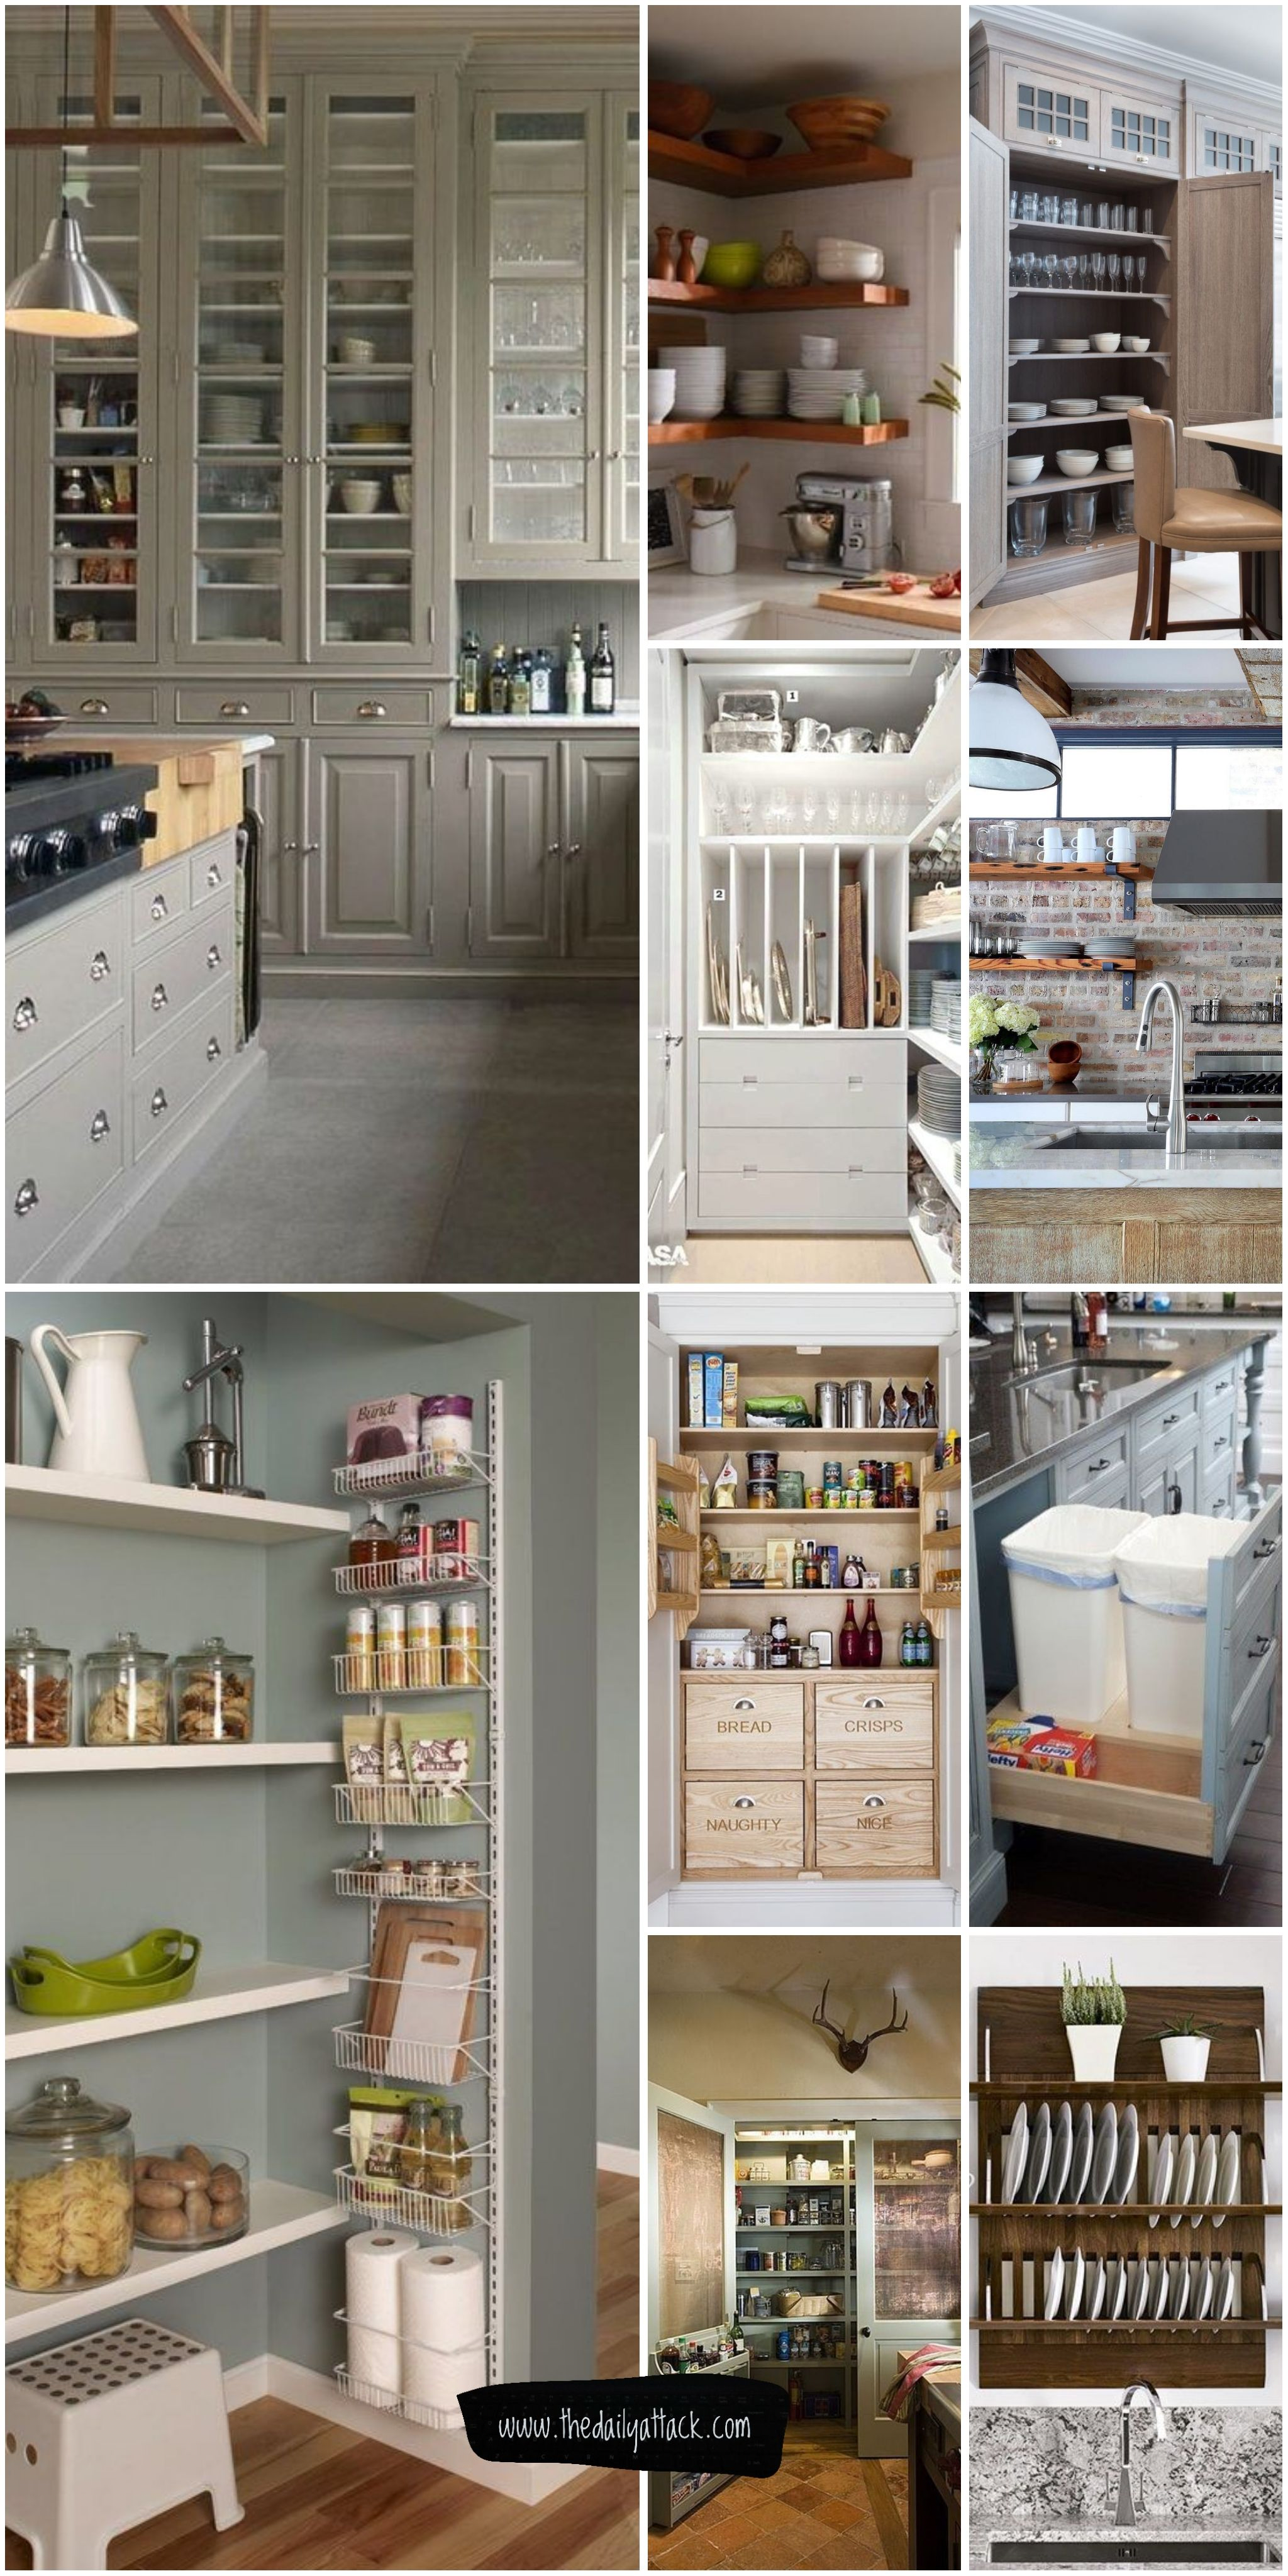 Asksc50 Awesome Small Kitchen Storage Cabinets Today 2021 01 26